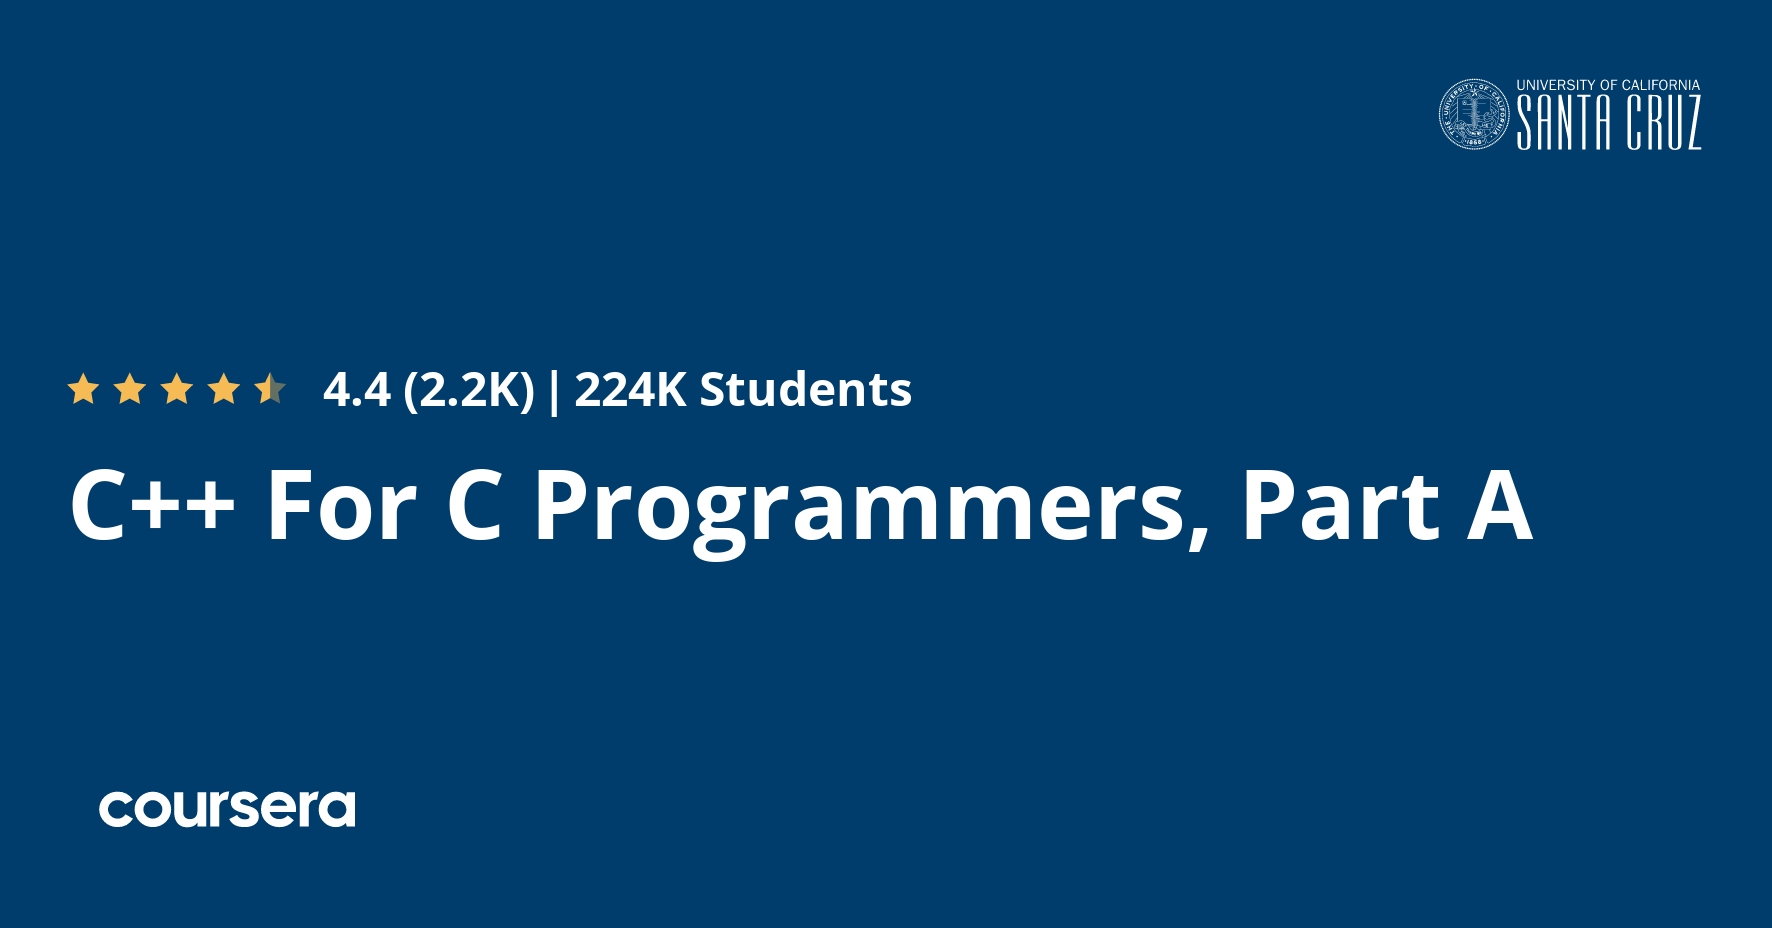 C++ For C Programmers, Part A  Coursera